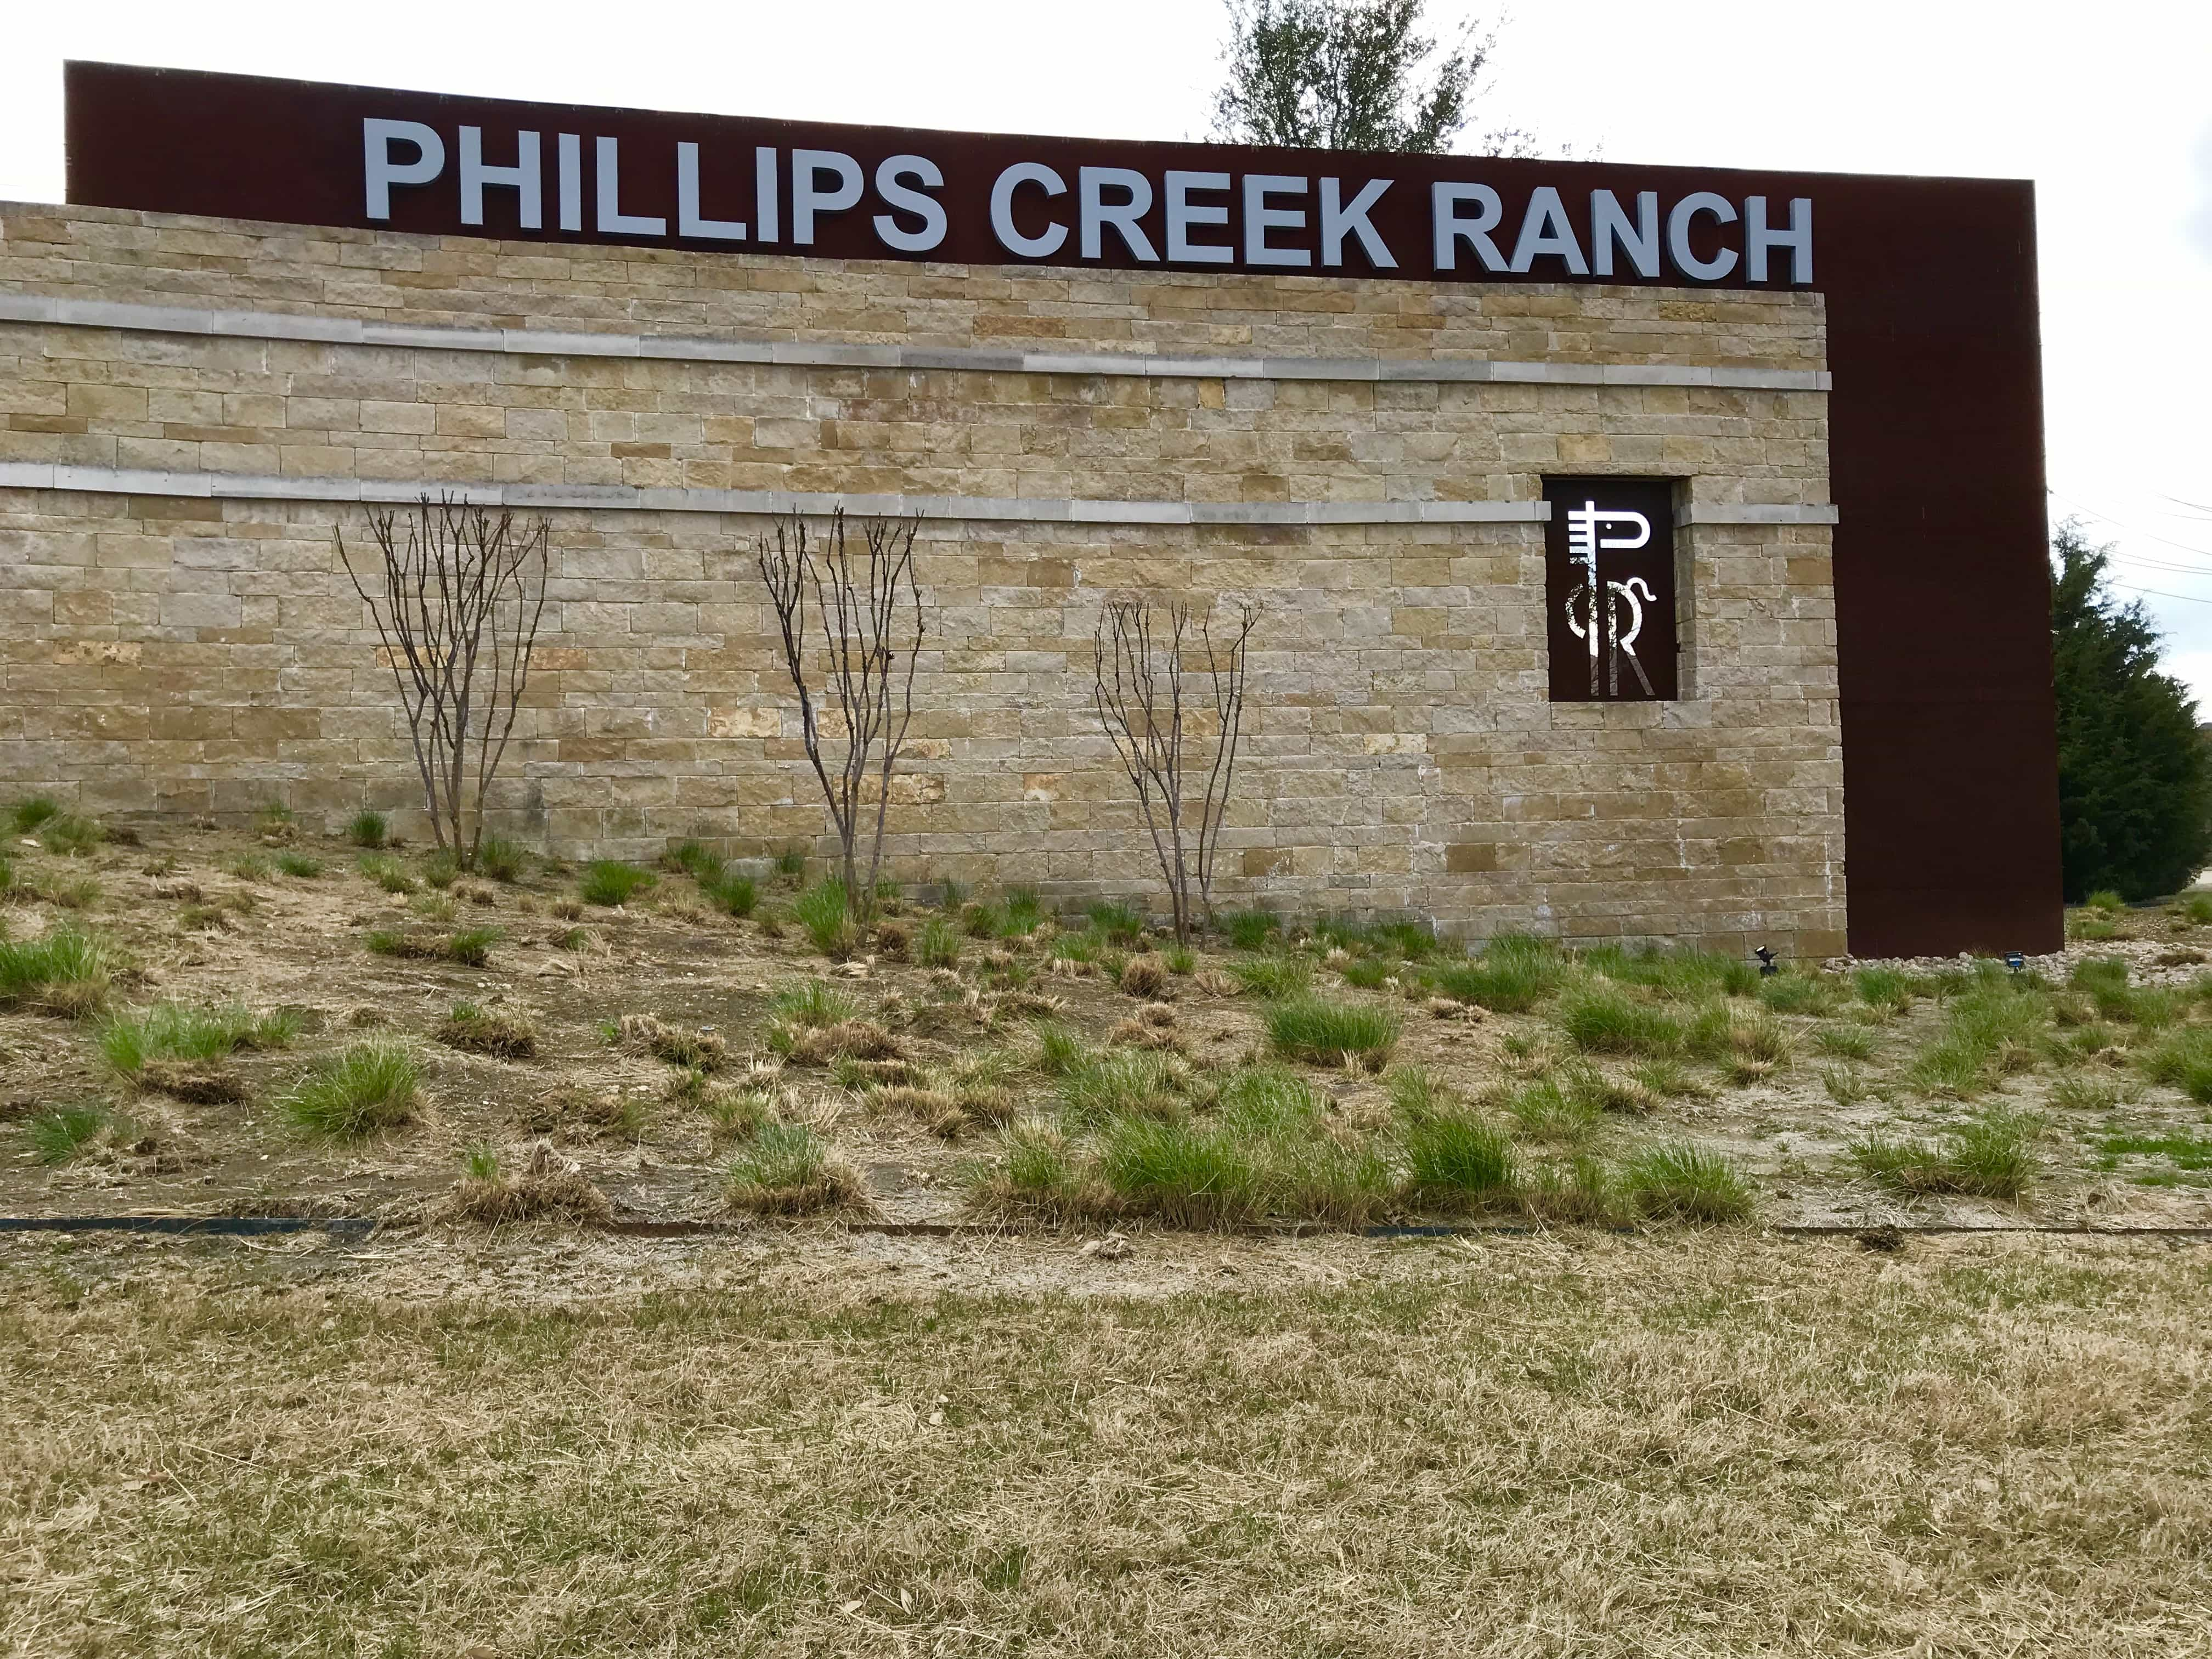 http://www.phillipscreekranchtx.com/amenities